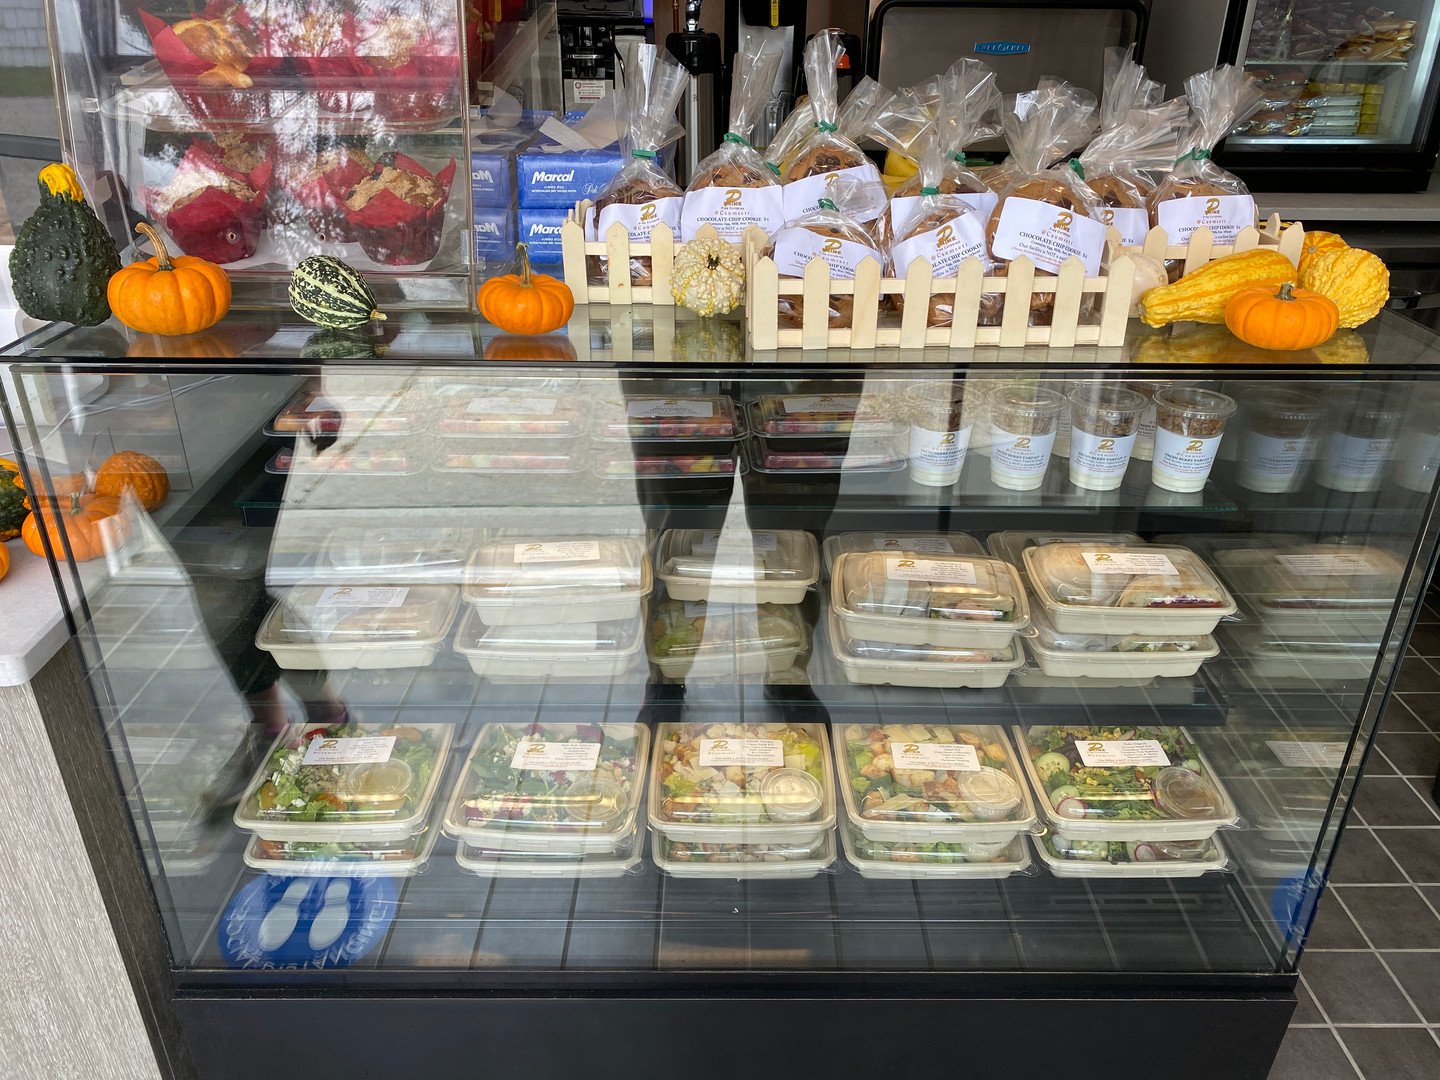 Serving delicious salads, sandwiches and fresh baked goods